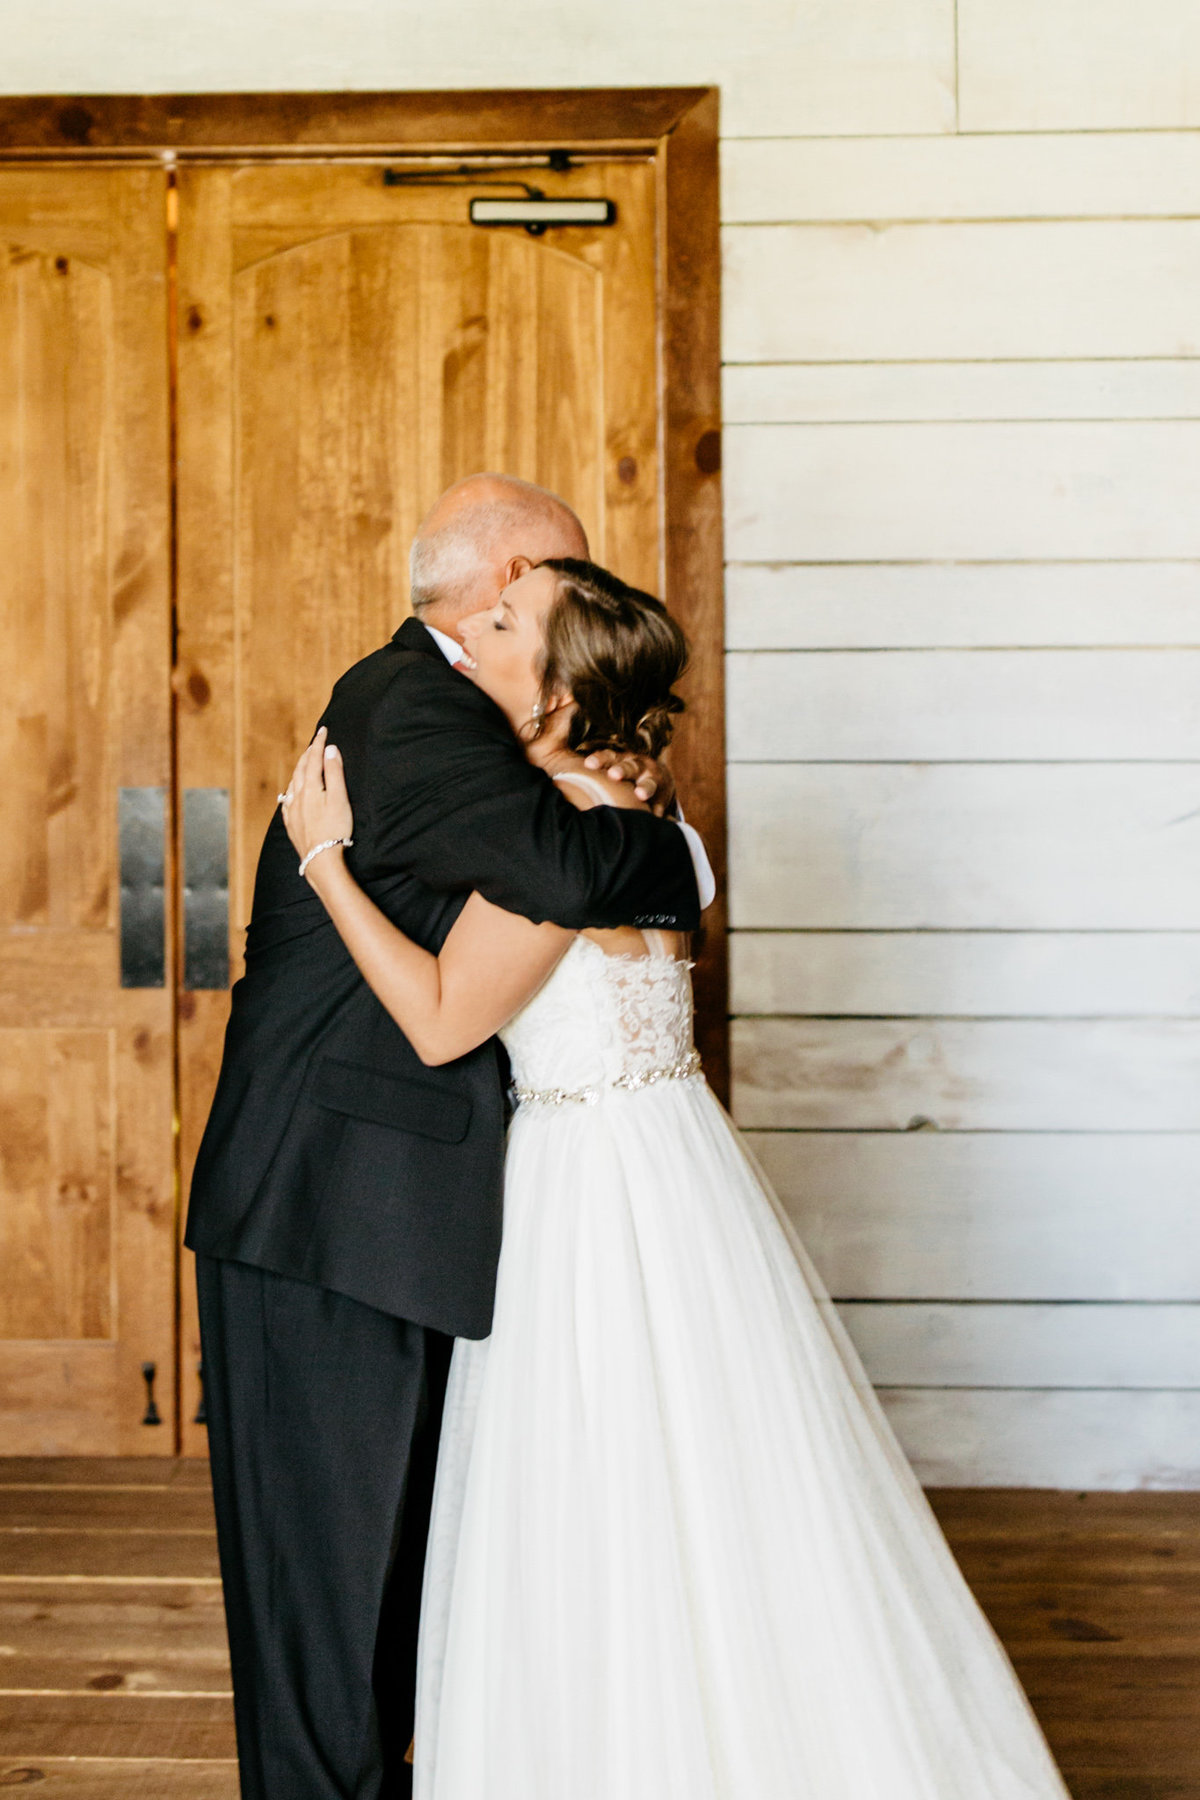 Alexa-Vossler-Photo_Dallas-Wedding-Photographer_North-Texas-Wedding-Photographer_Stephanie-Chase-Wedding-at-Morgan-Creek-Barn-Aubrey-Texas_16